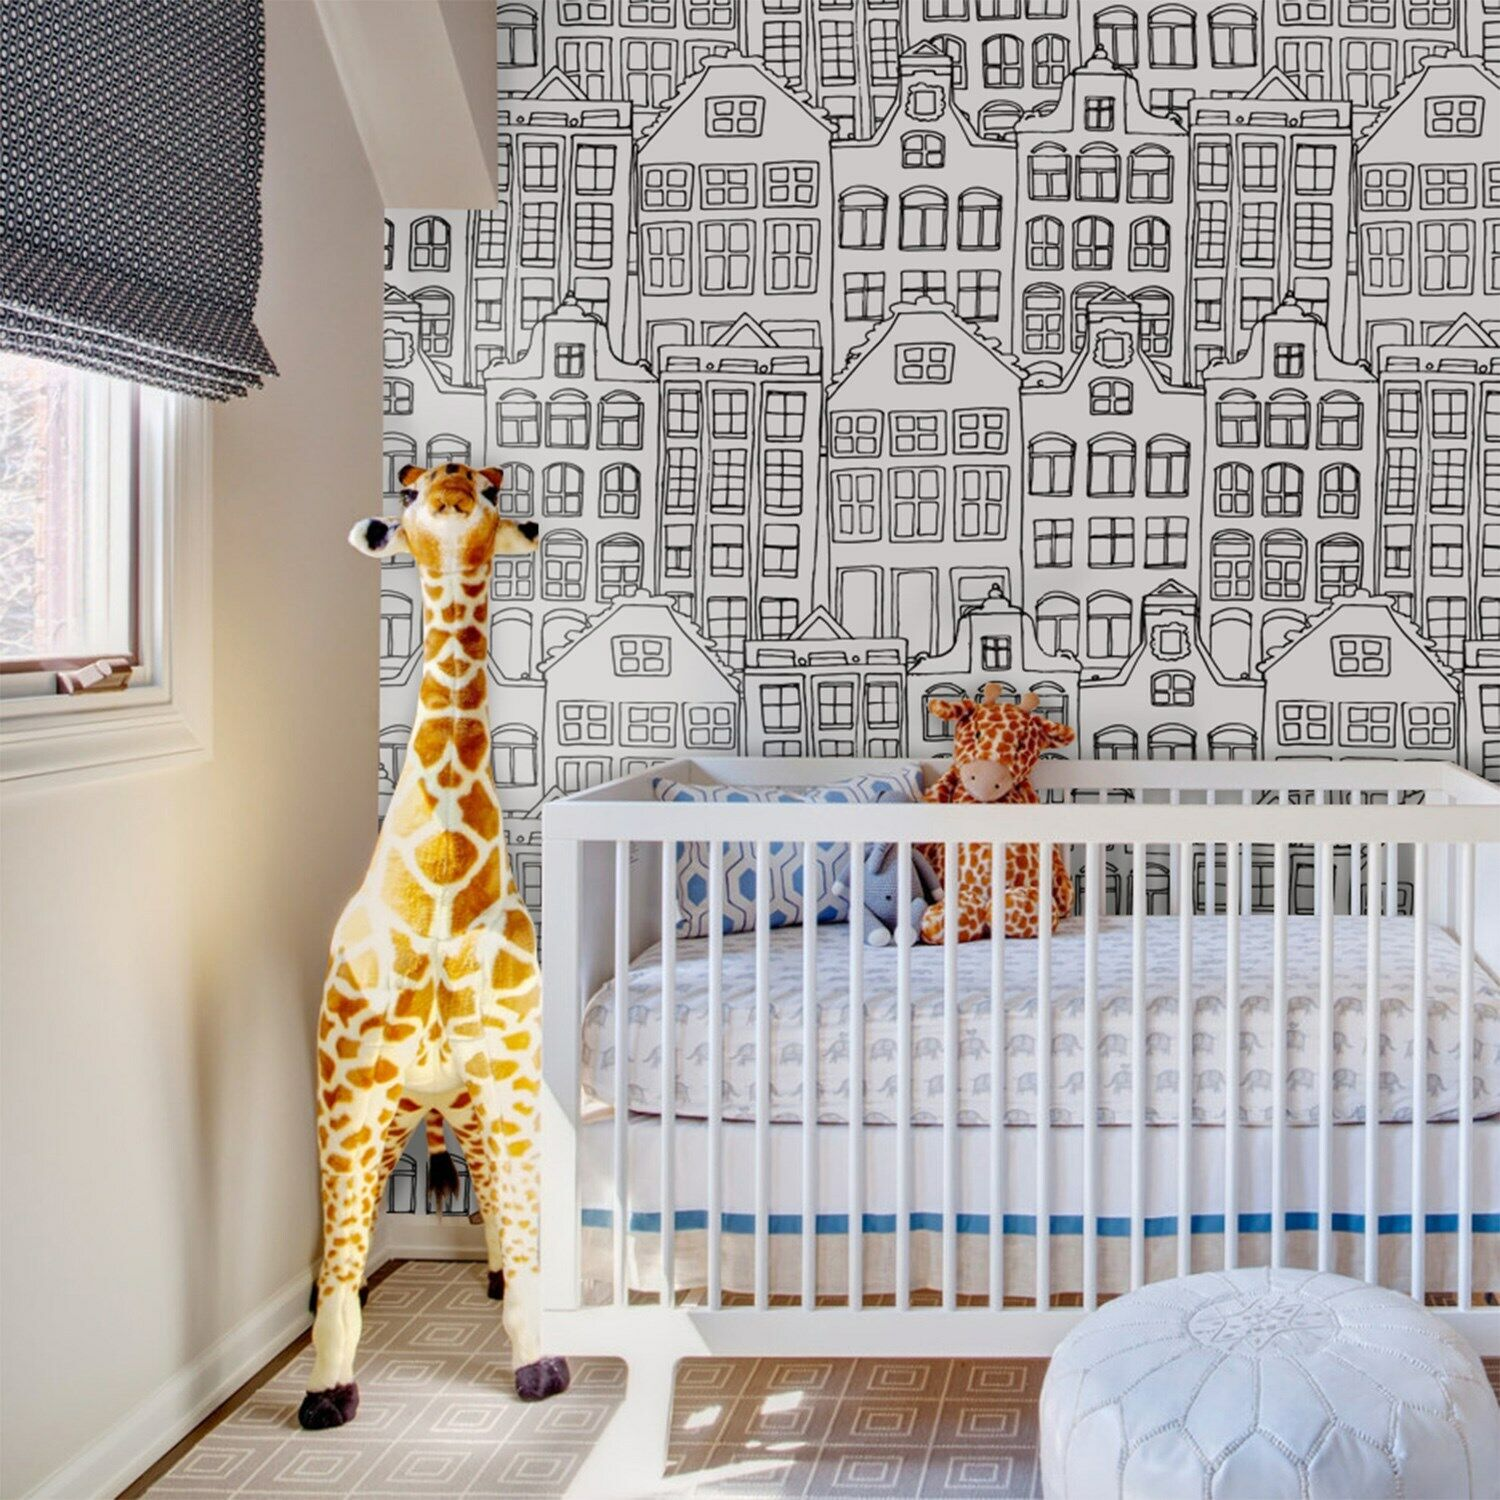 Doodle city Non-Woven wallpaper Funky buildings Navy drawing Minimalist murals